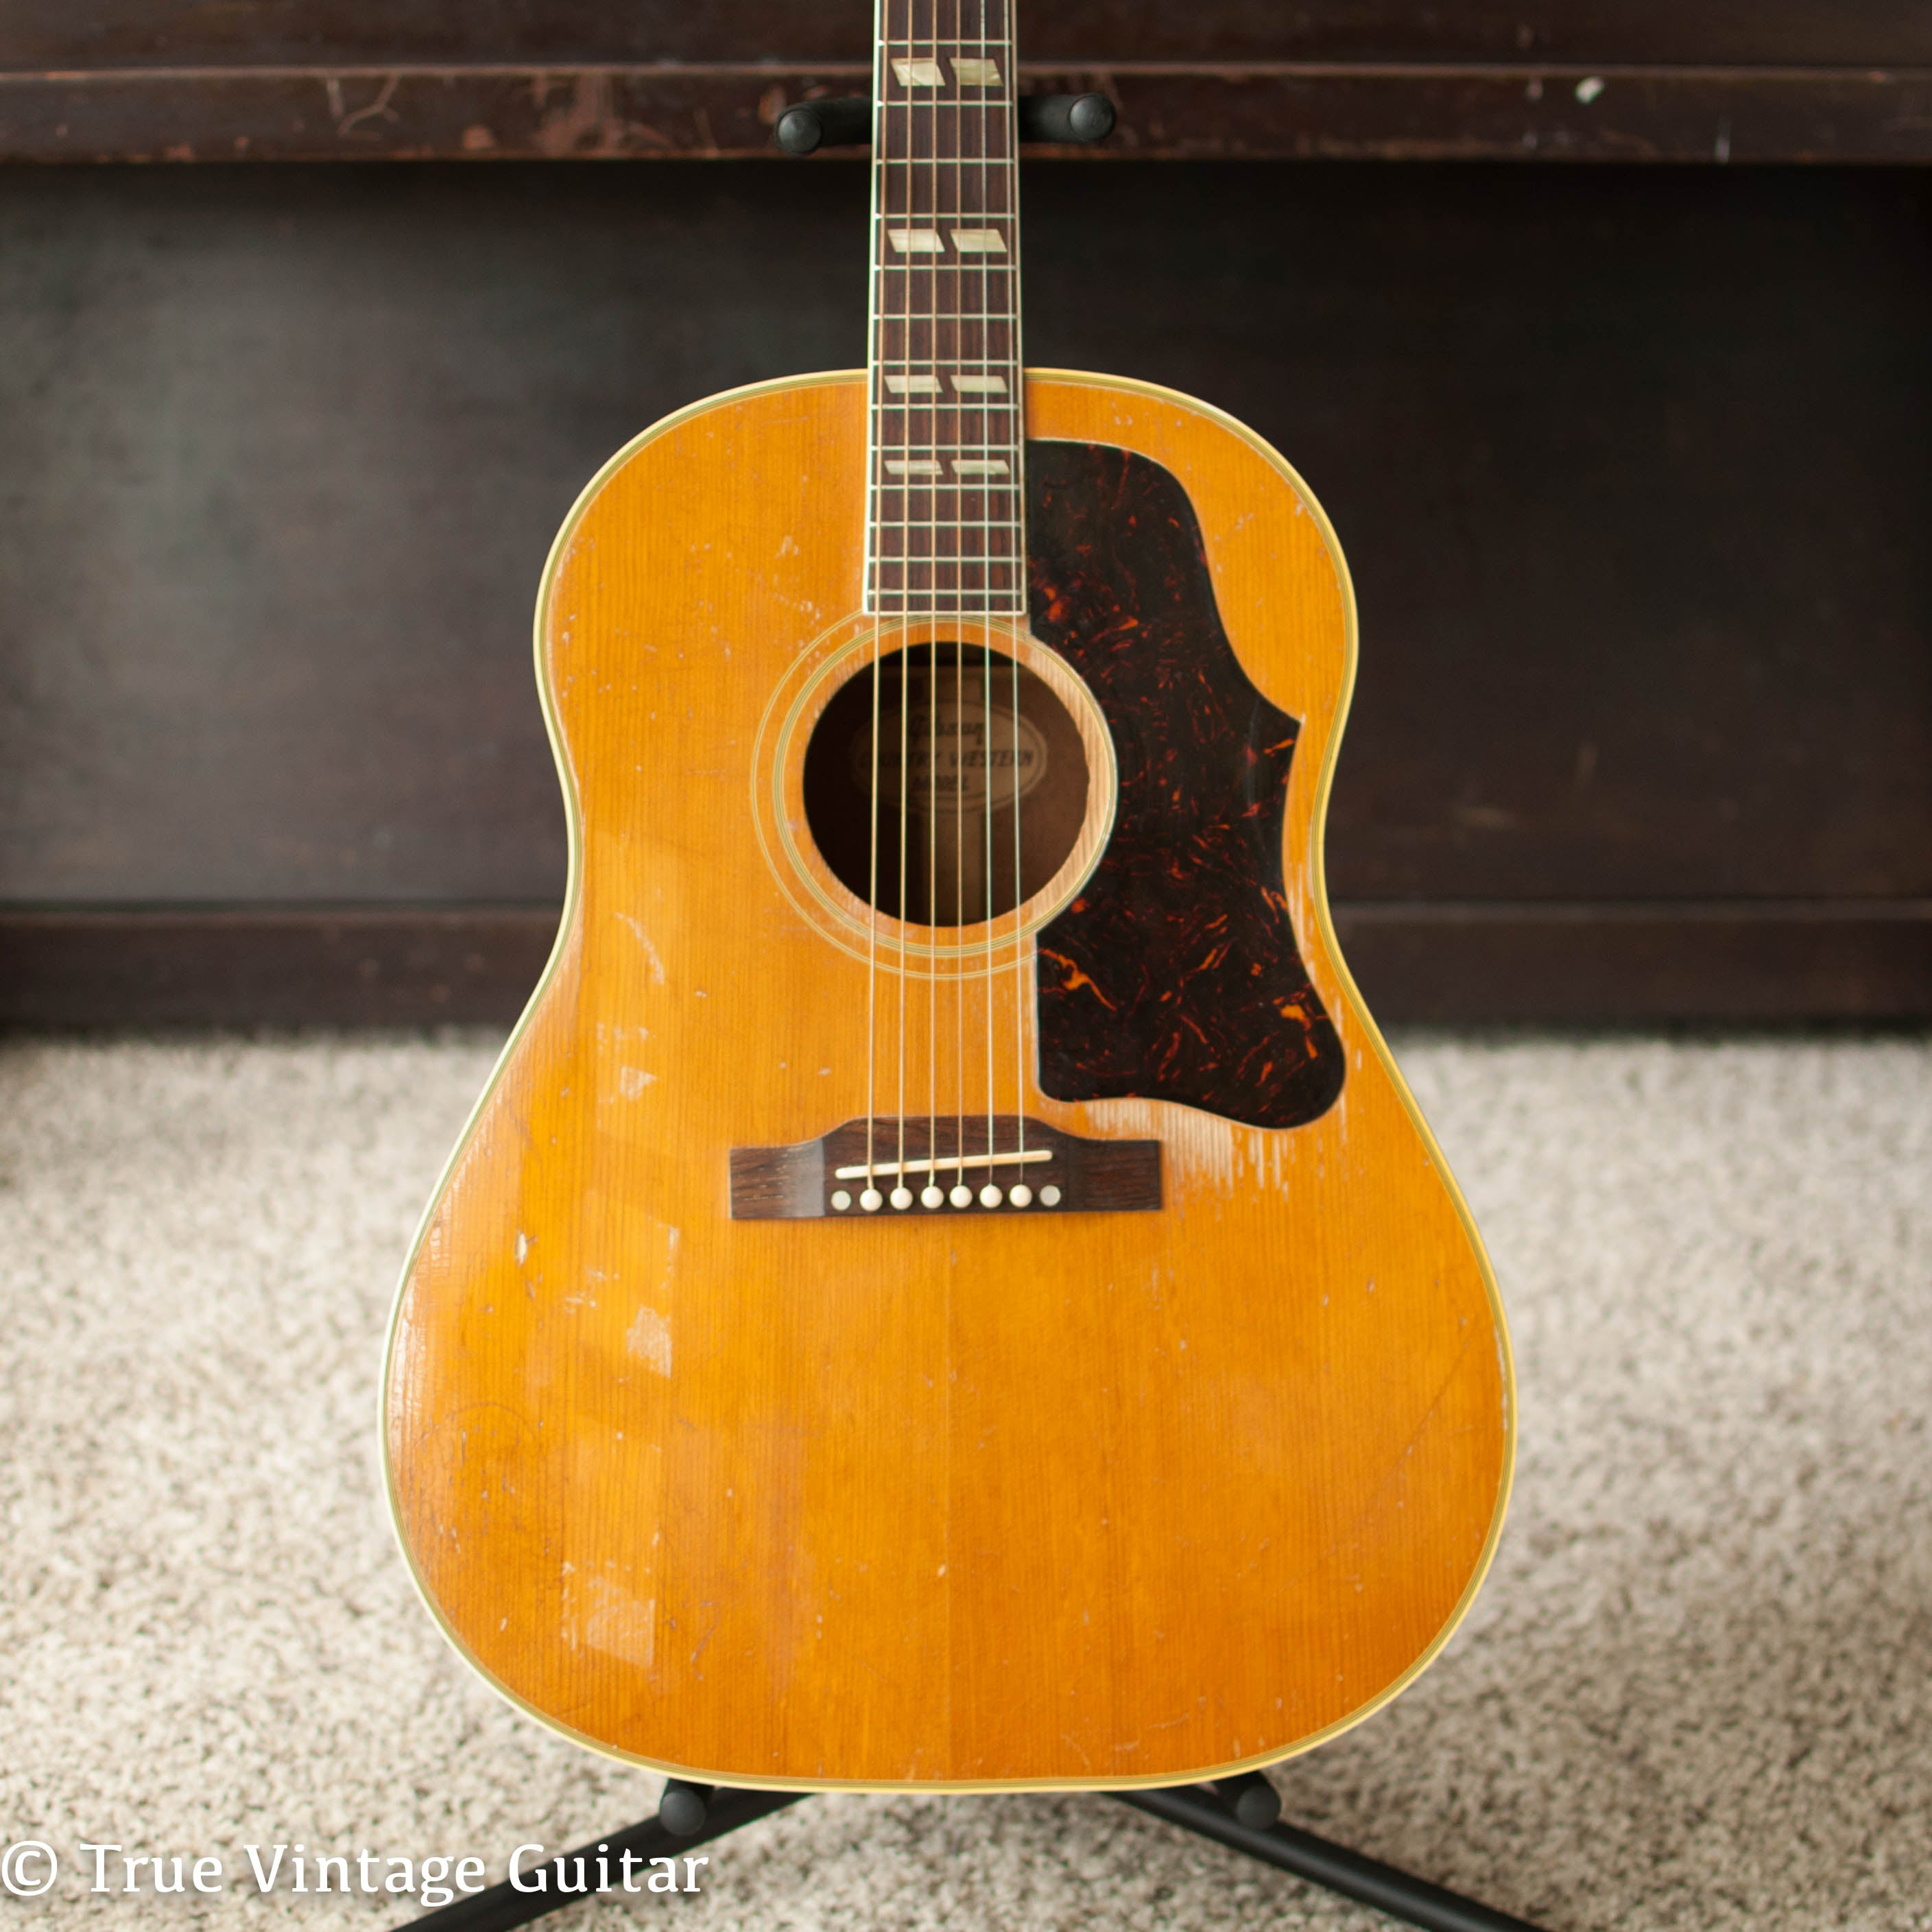 Vintage 1950s Gibson acoustic guitar Country Western